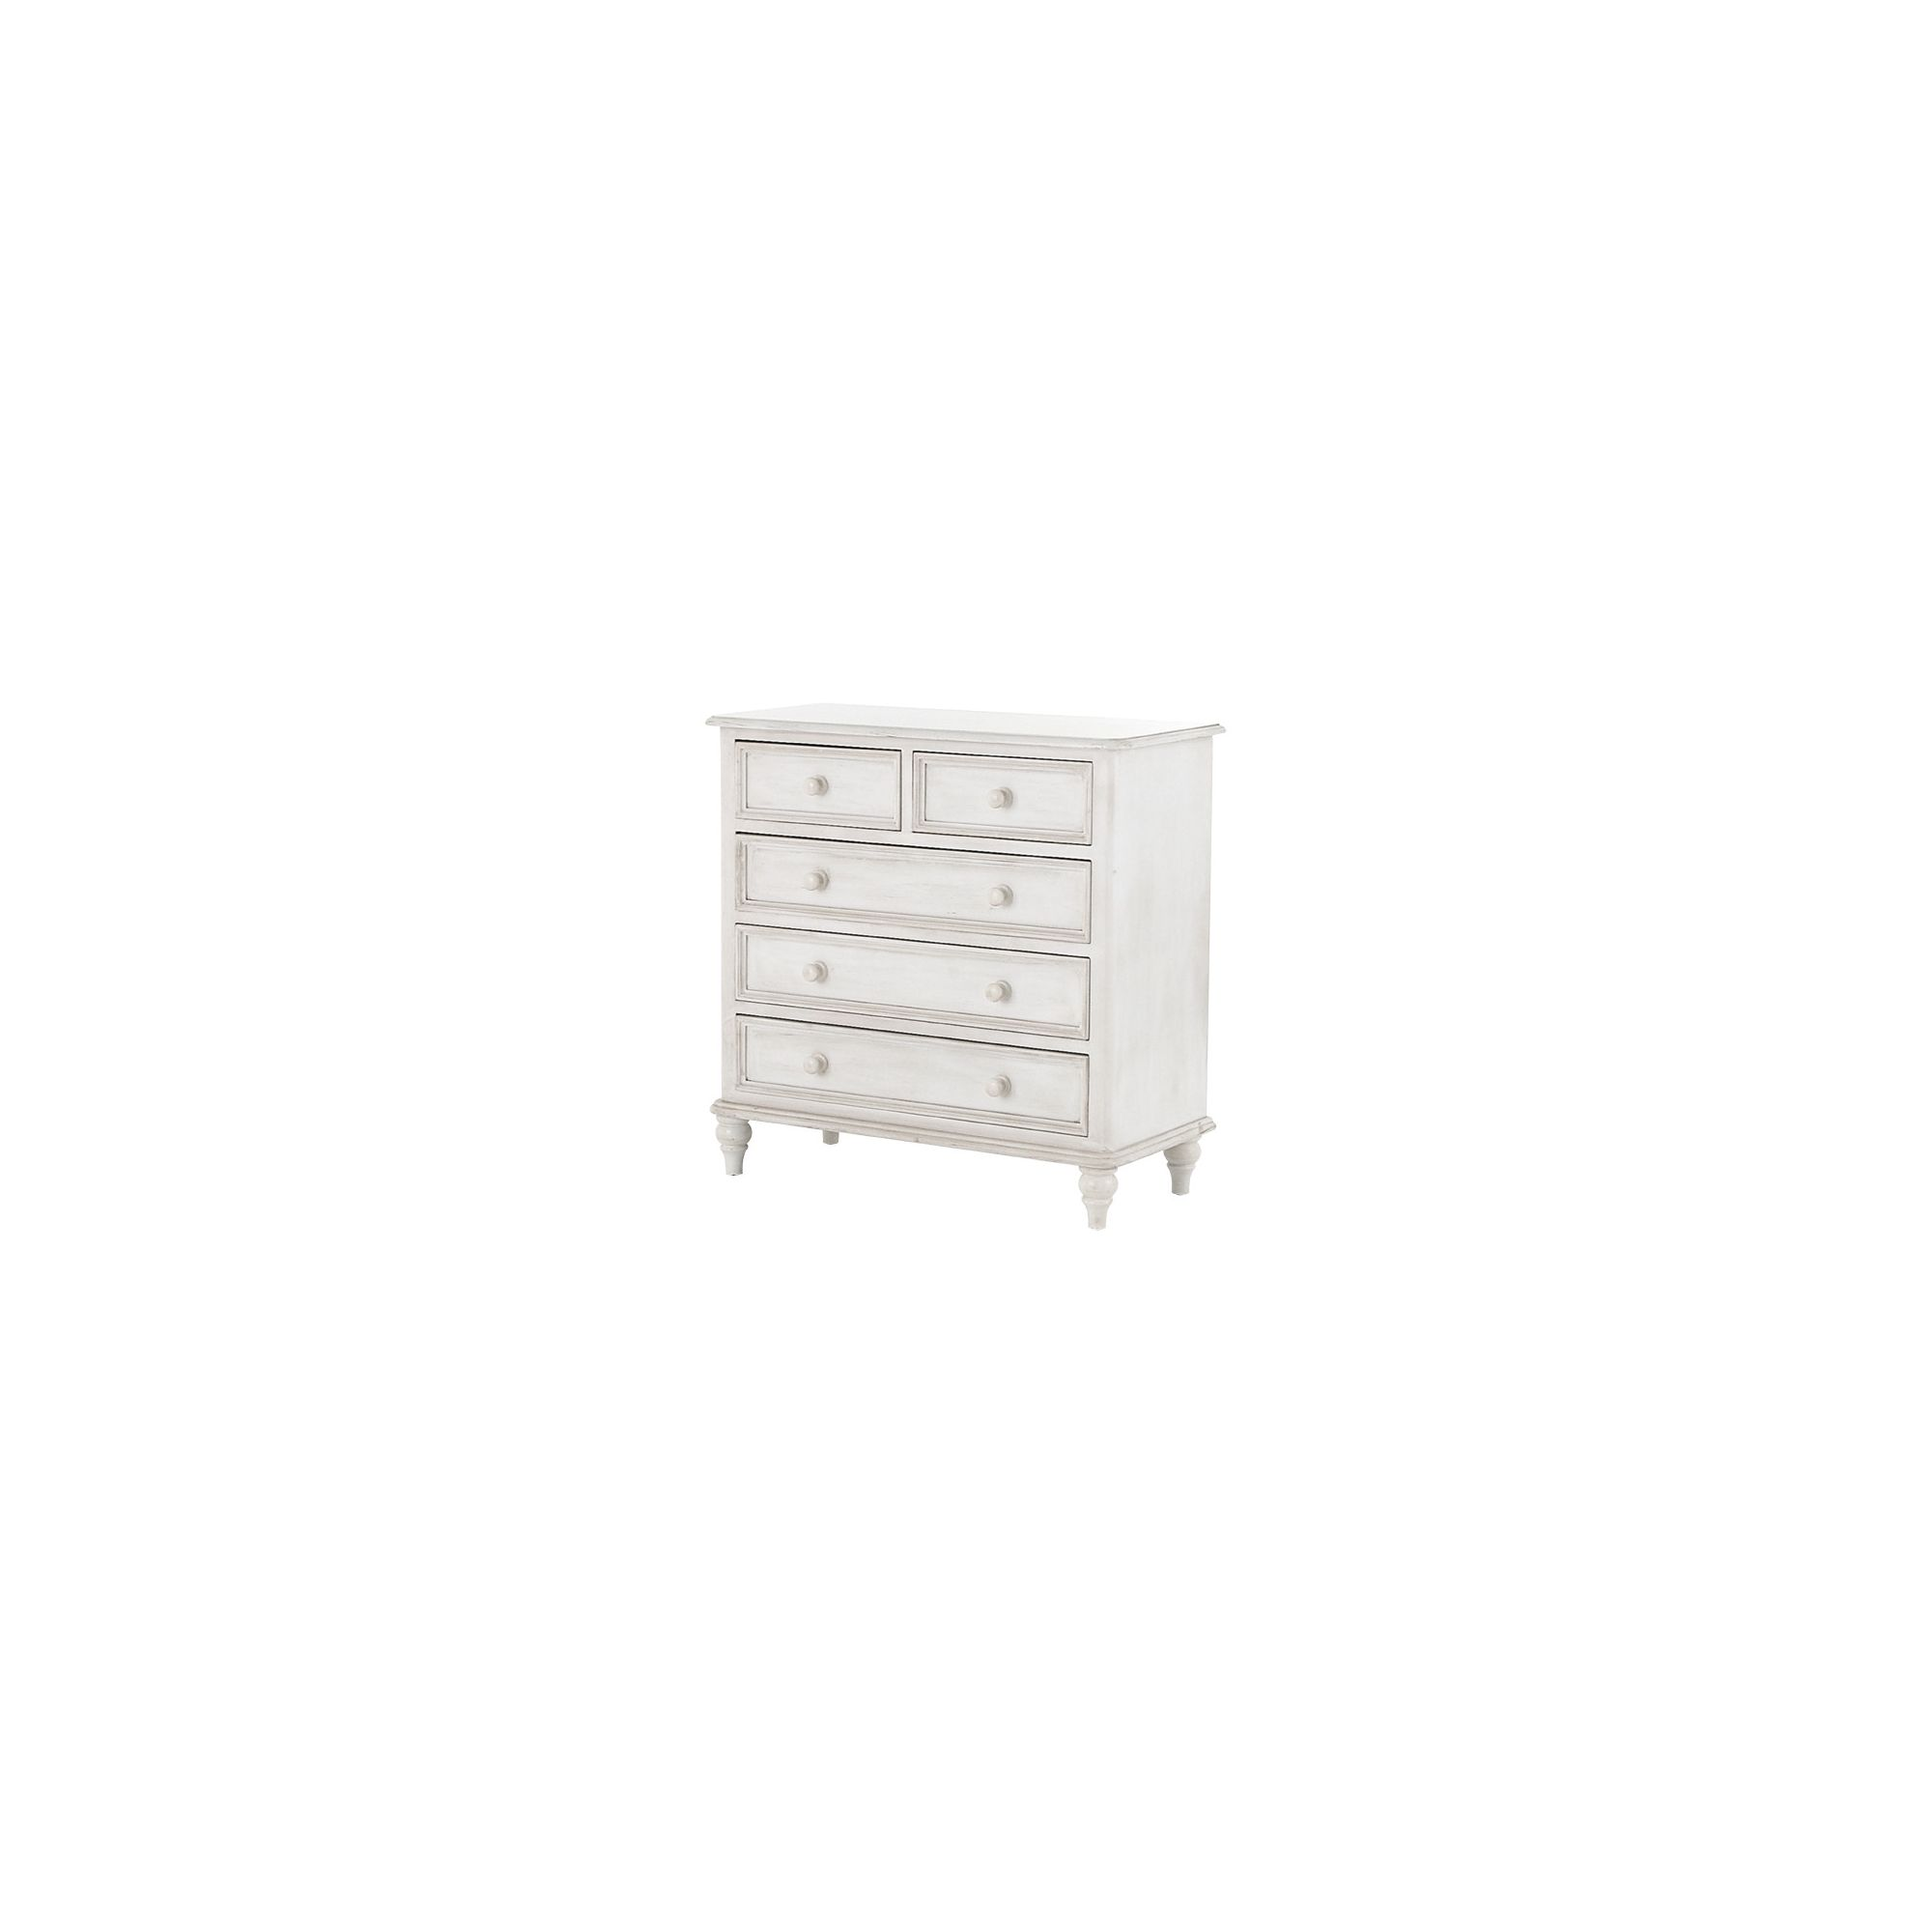 Thorndon Brittany 2 Over 3 Drawer Chest in Antique White at Tesco Direct